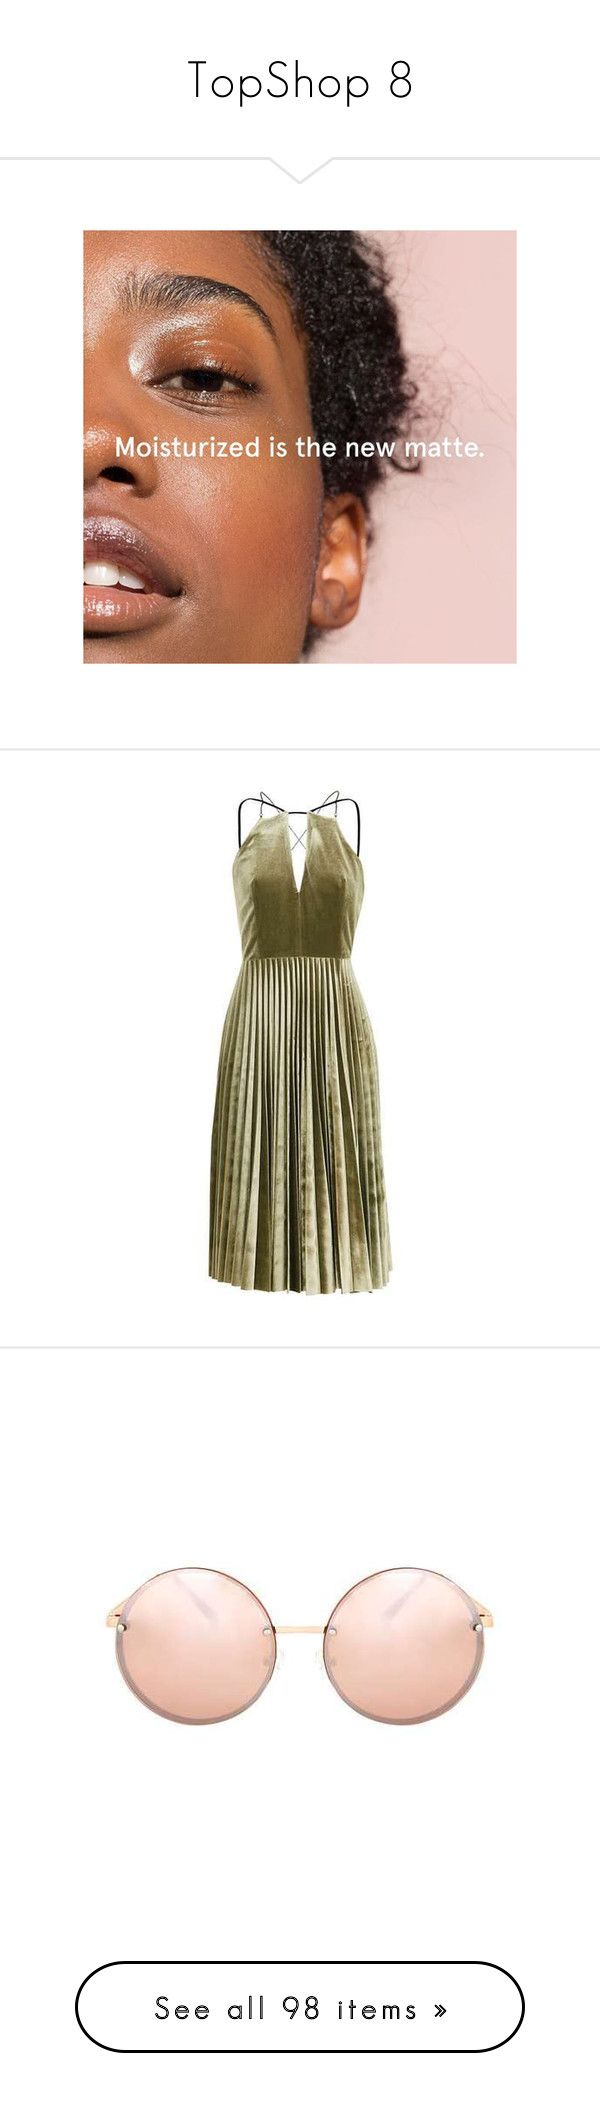 """TopShop 8"" by pocahaunted666 ❤ liked on Polyvore featuring dresses, brown dress, velvet dress, chain dress, brown velvet dress, brown pleated dress, accessories, eyewear, sunglasses and topshop sunglasses"